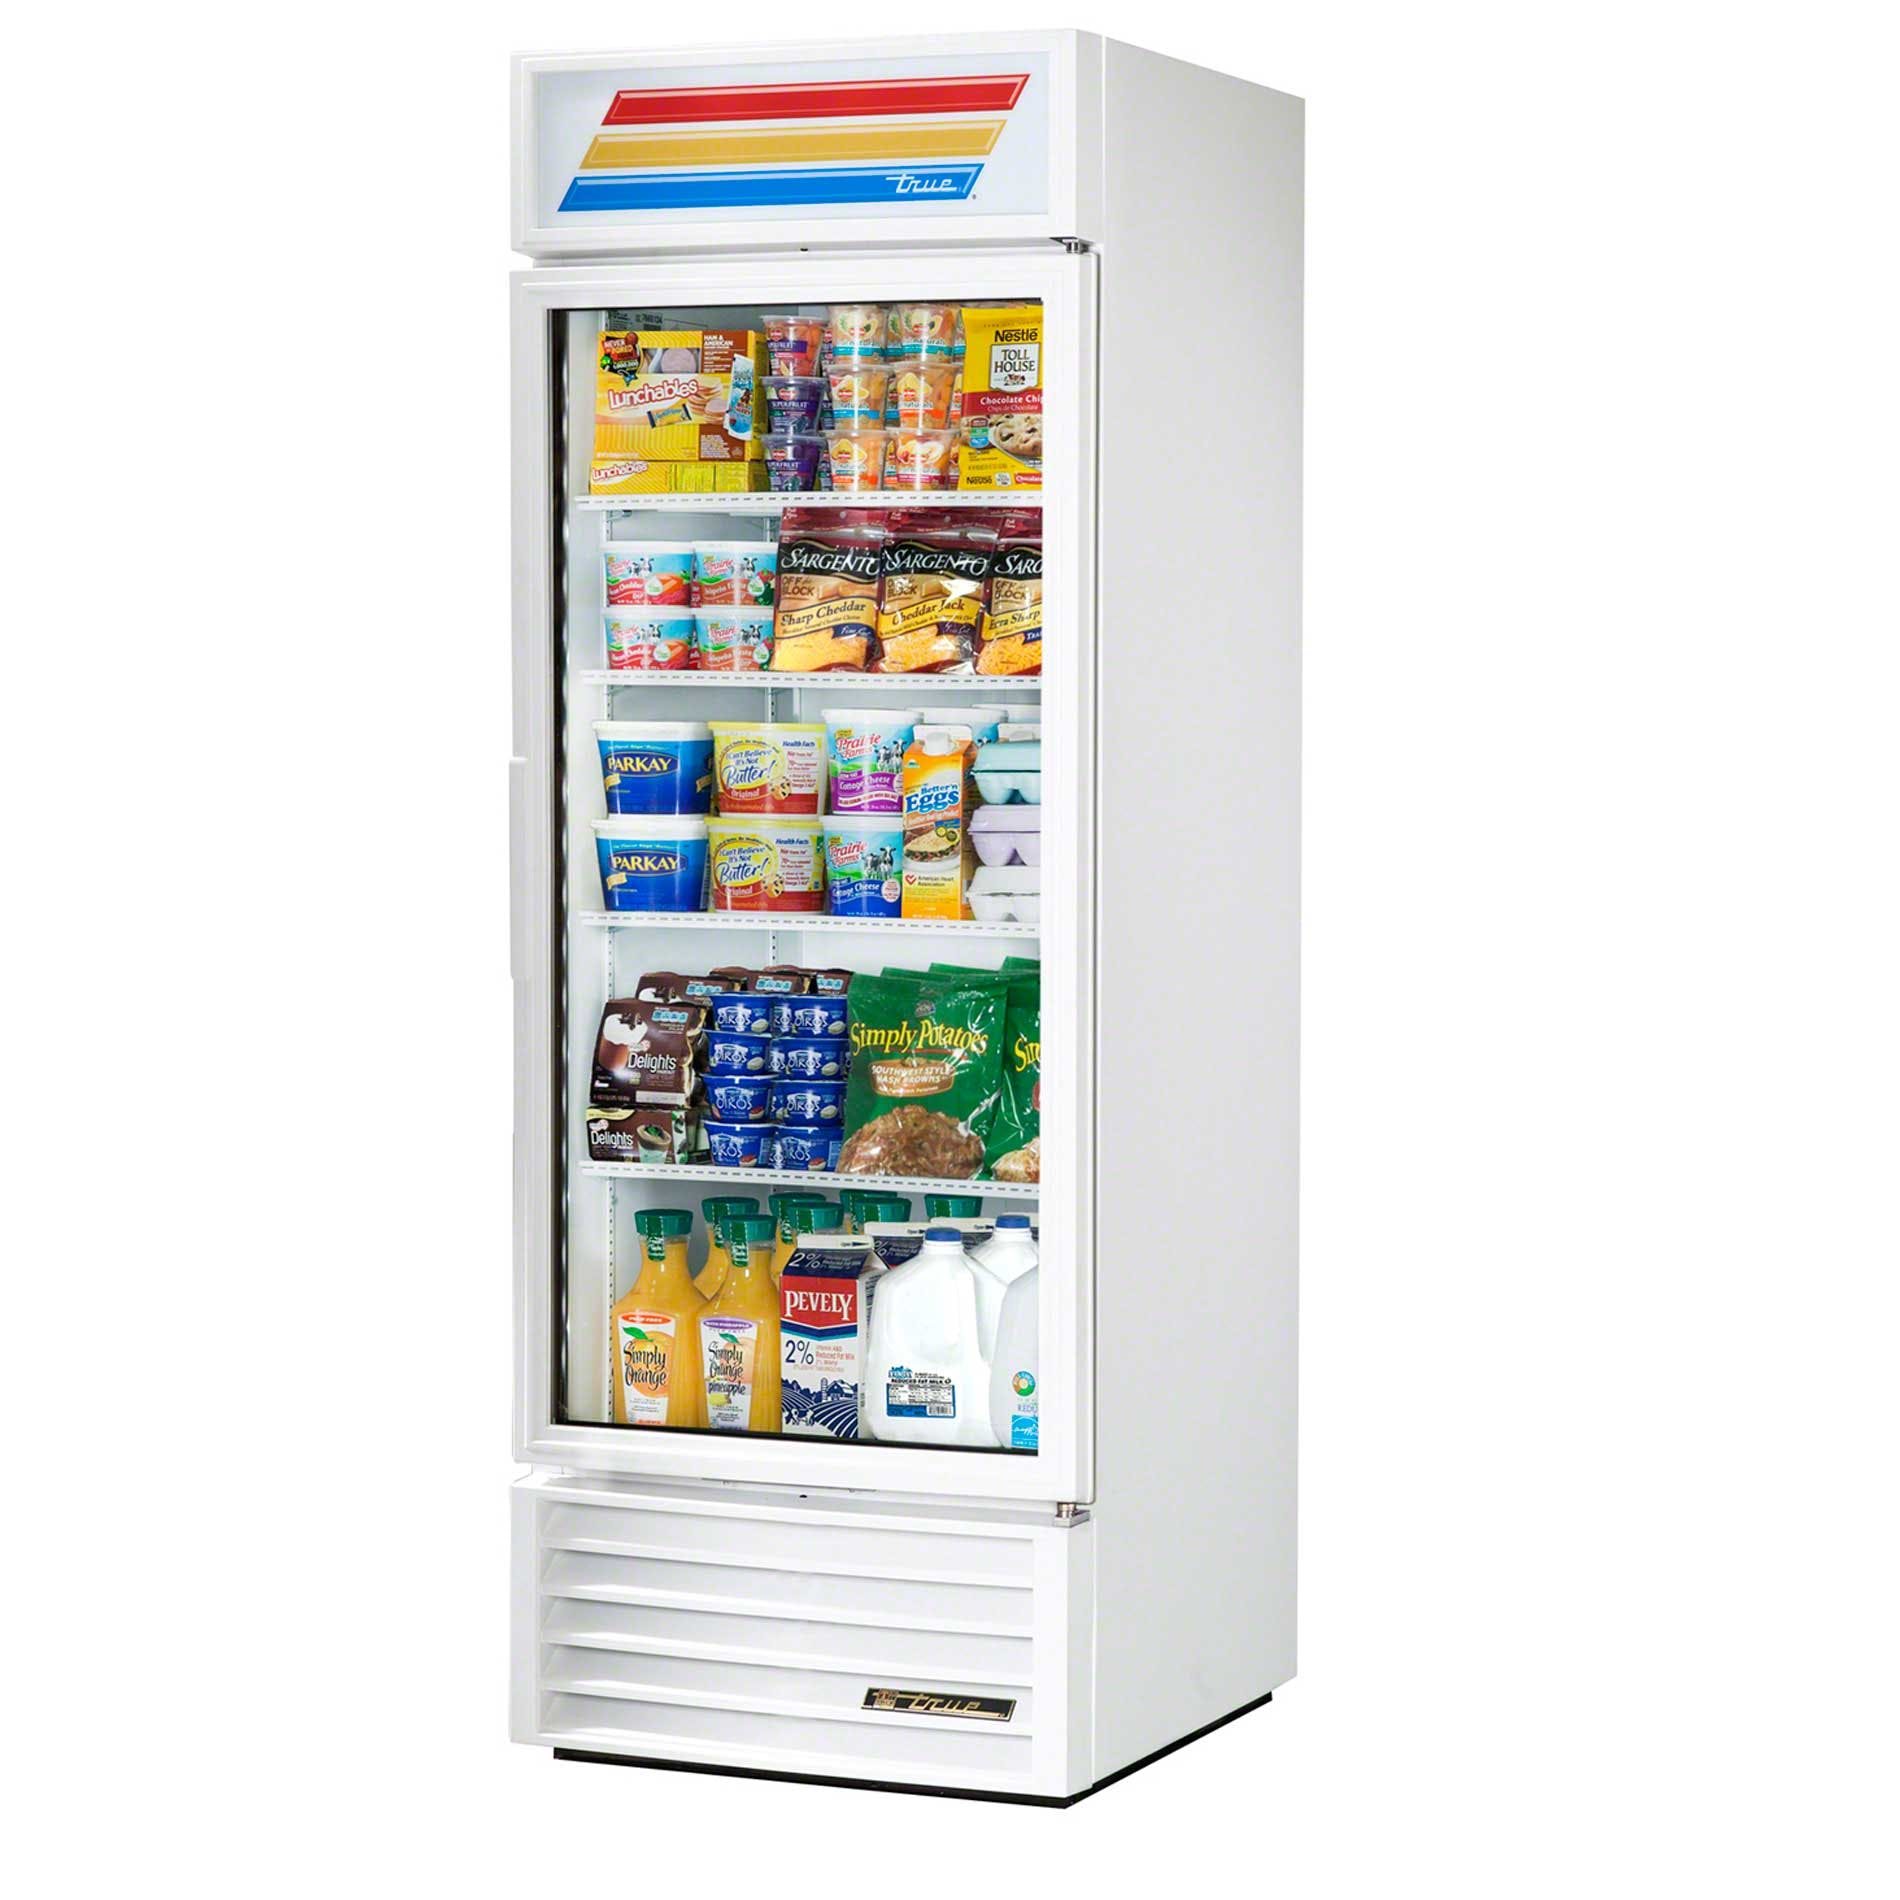 "True - GDM-23-LD WHT WHTTRM 27"" Swing Glass Door Merchandiser Refrigerator LED Commercial refrigerator sold by Food Service Warehouse"